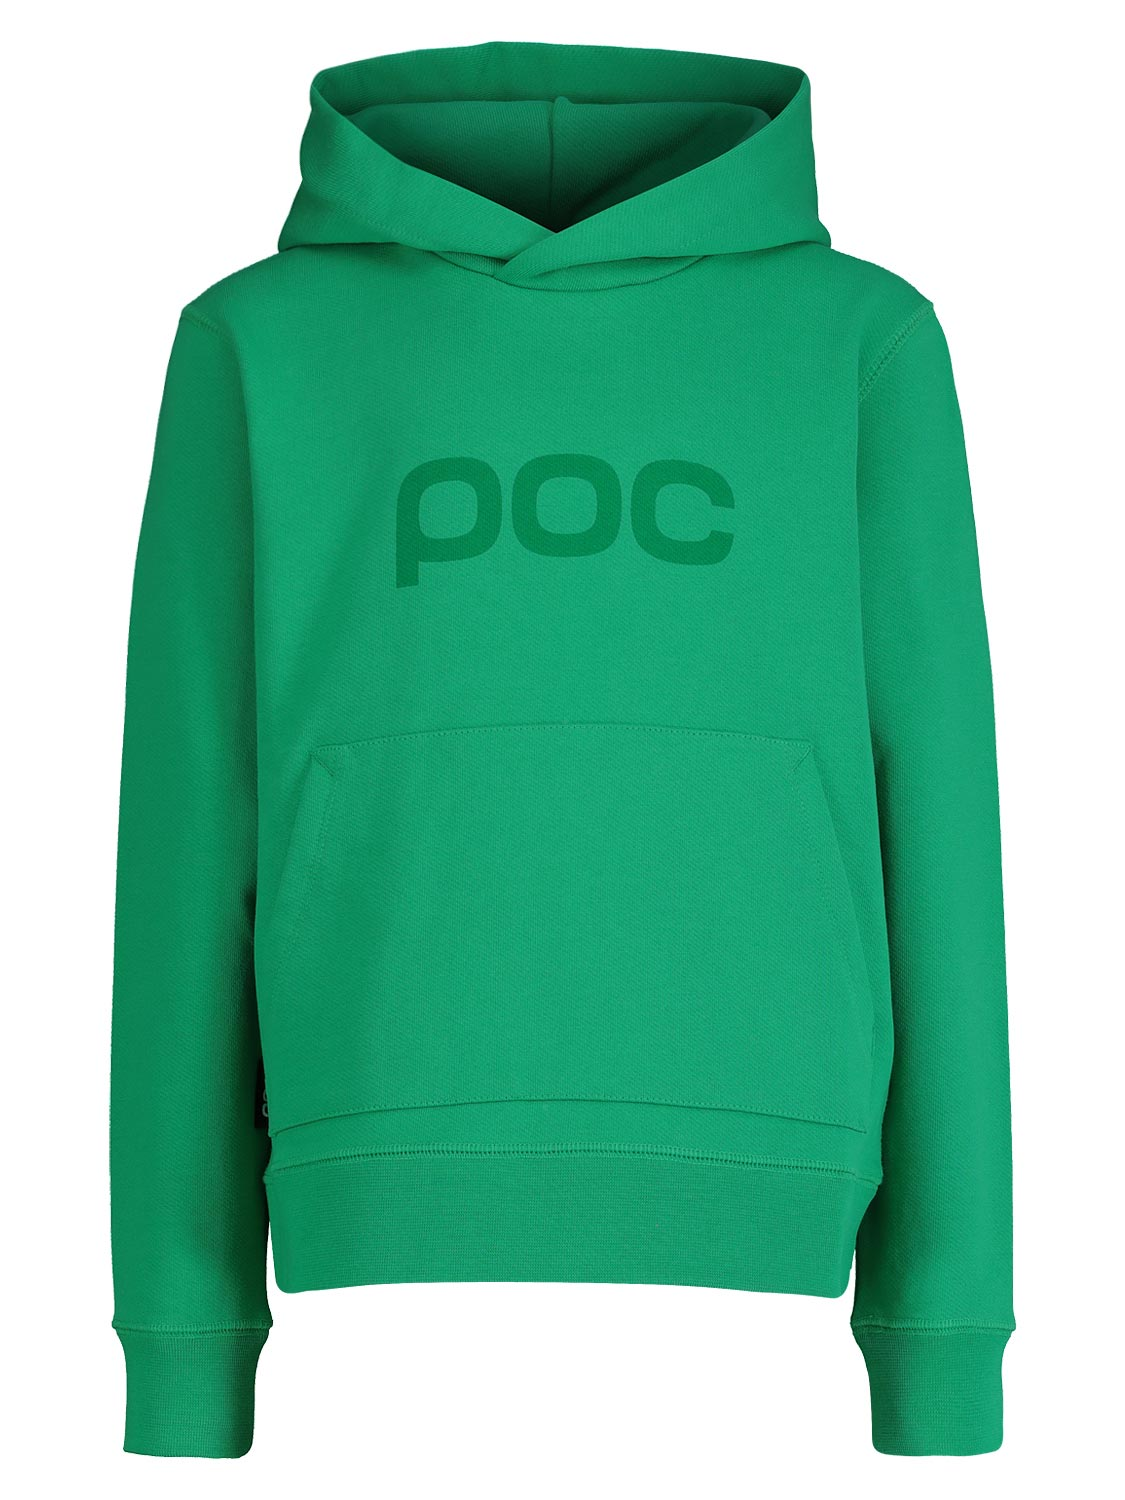 Poc Kids Hoodie For For Boys And For Girls In Grün